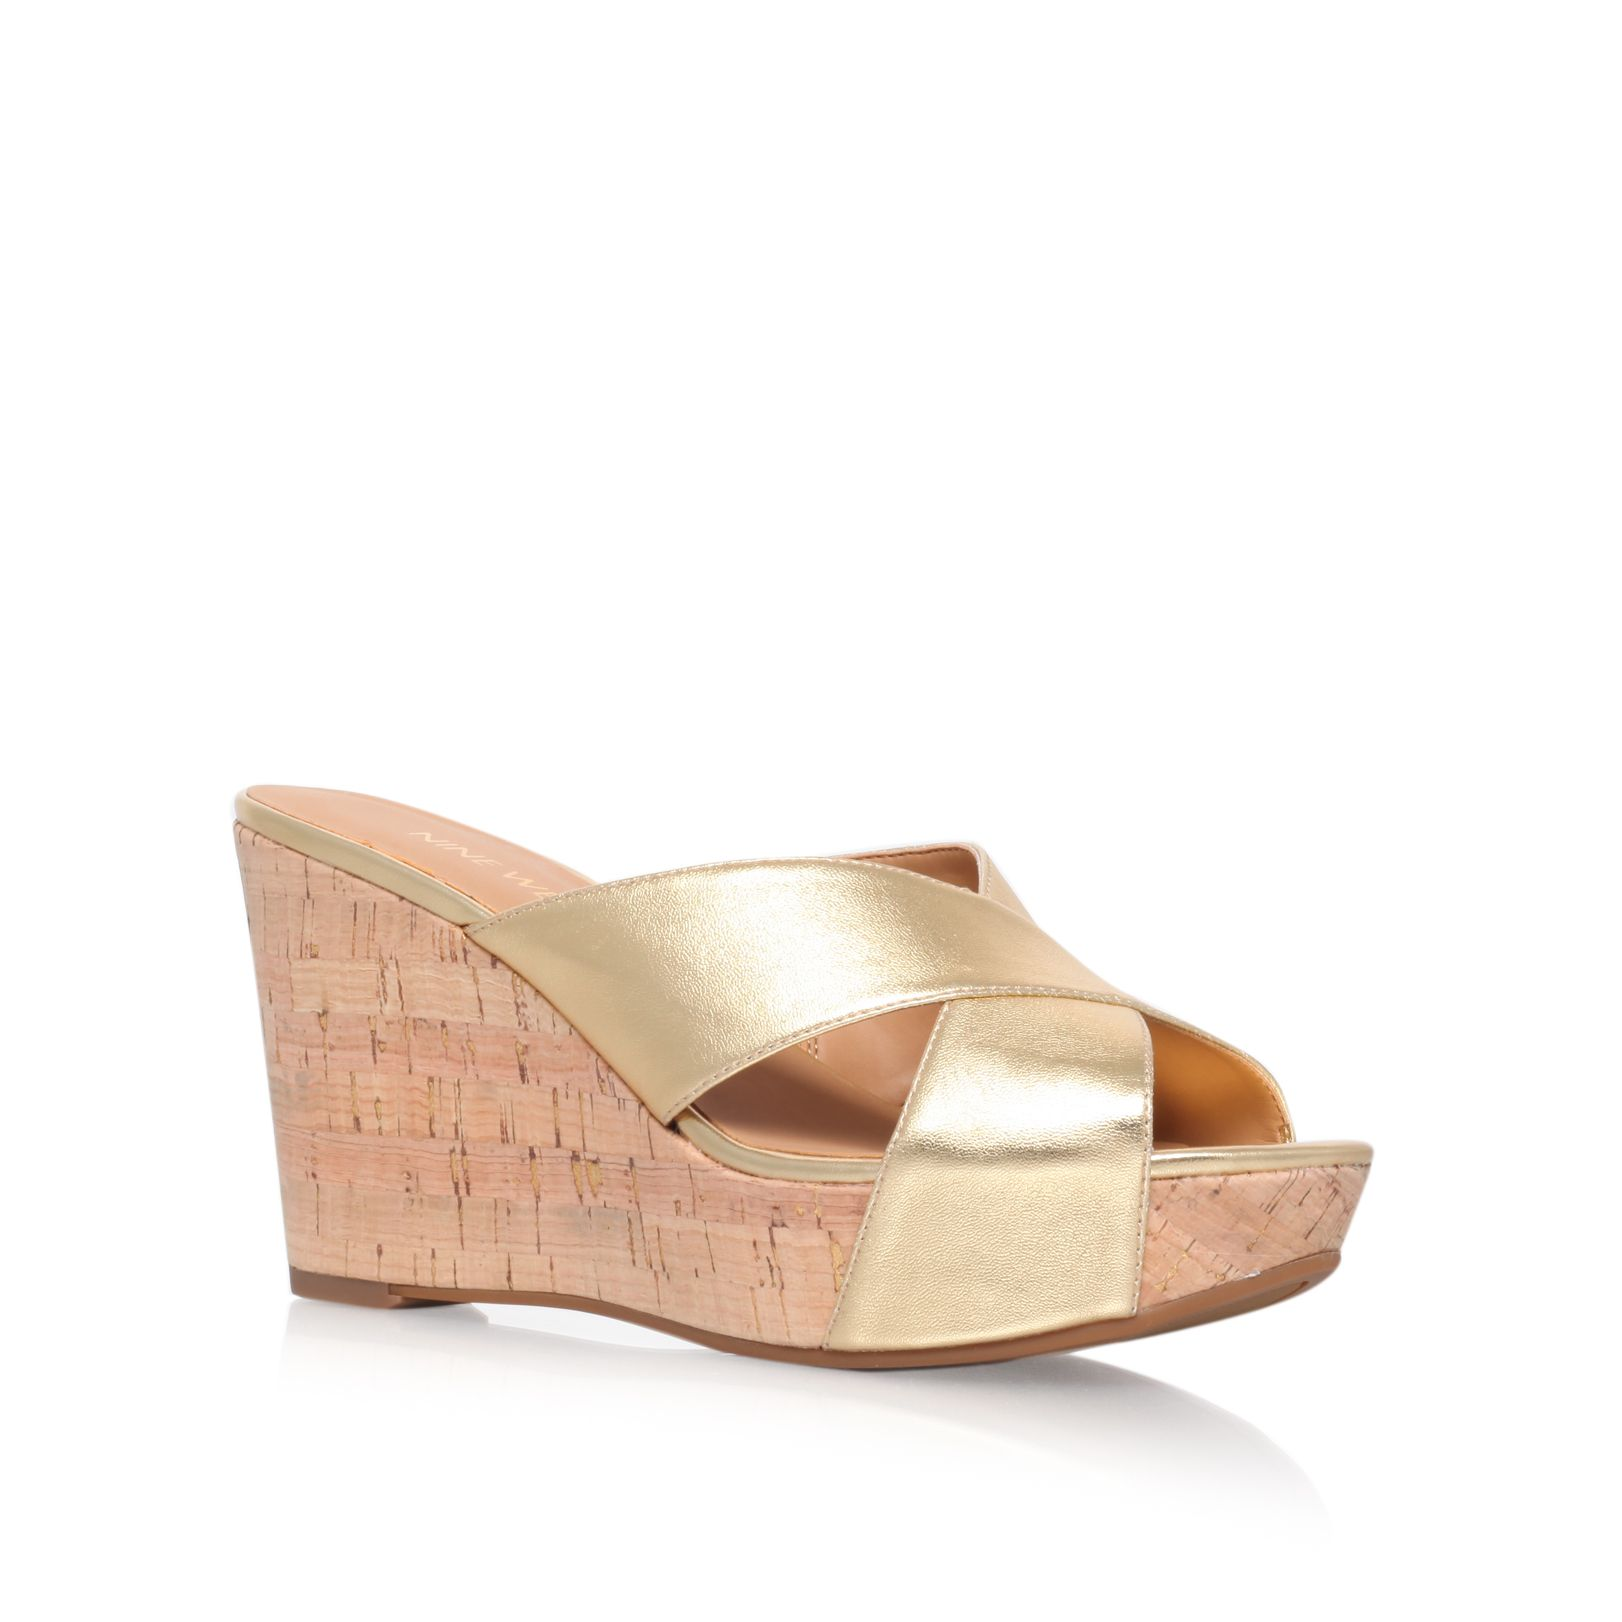 Etzamore high heeled wedge sandals